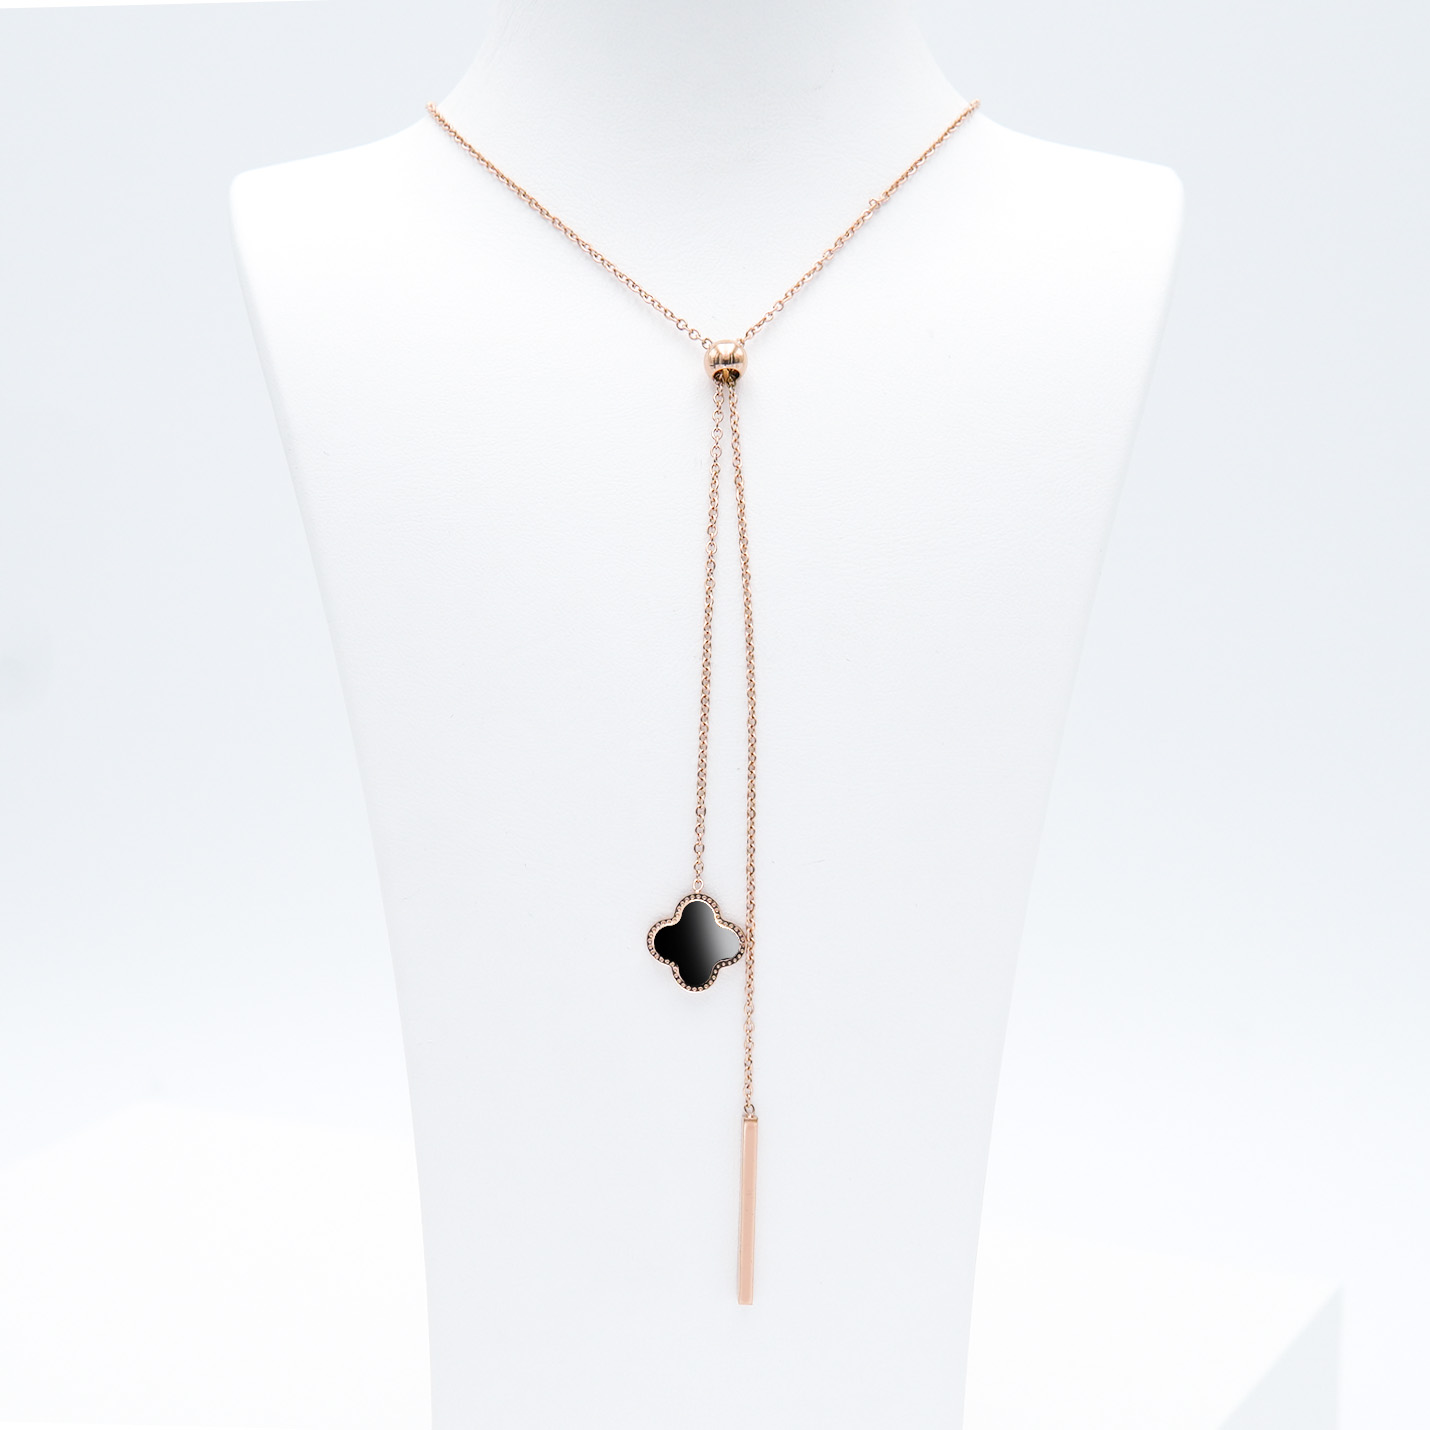 1- Clover Grace Brace Rose Edition Halsband Modern and trendy Necklace and women jewelry and accessories from SWEVALI fashion Sweden